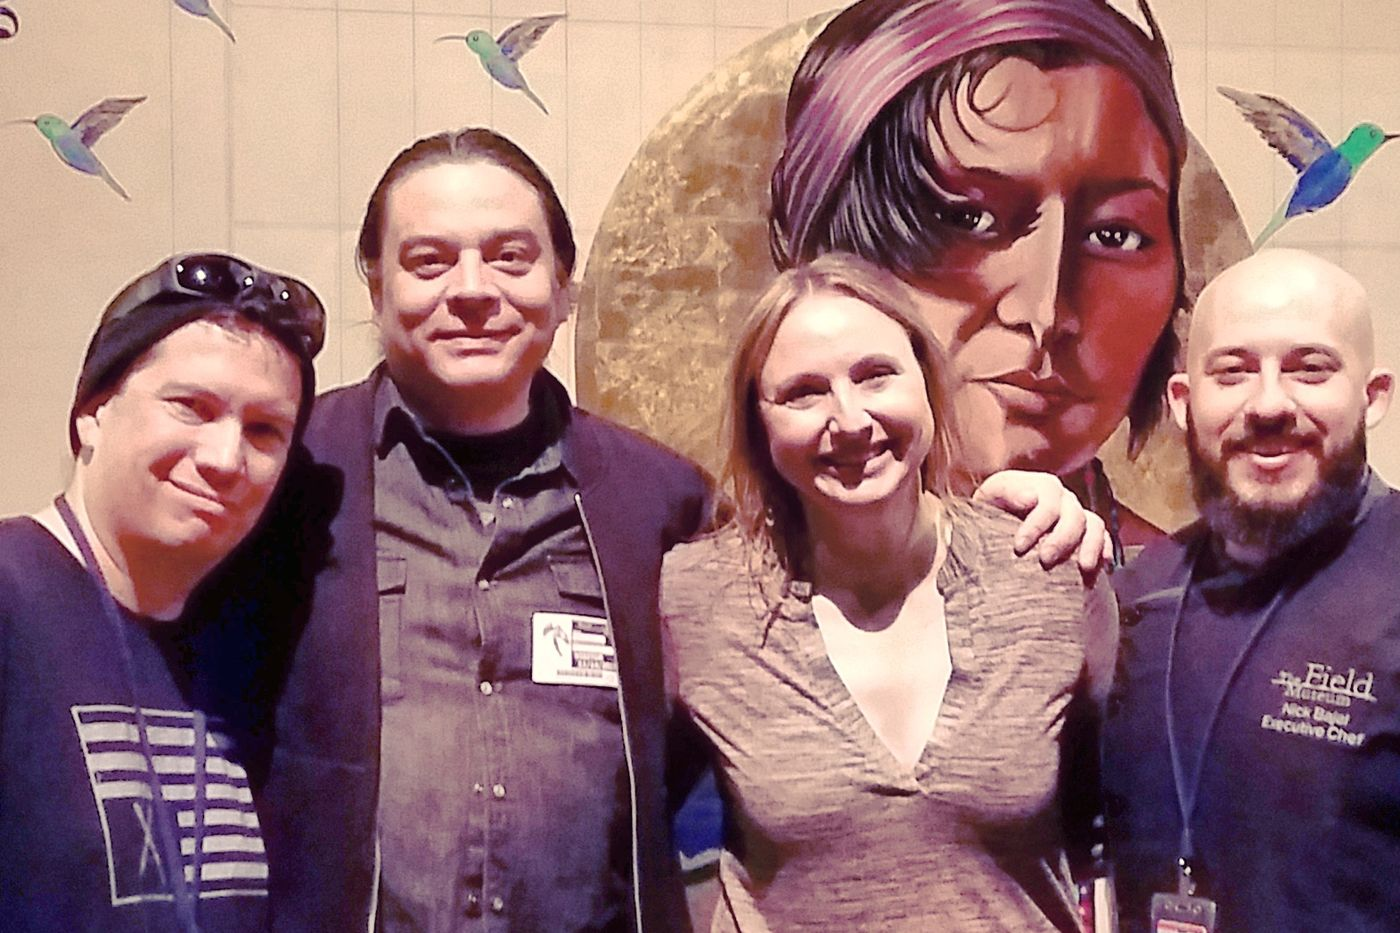 Four people, three men and a woman, smiling at the camera in front of a large mural with a woman's face and hummingbirds.